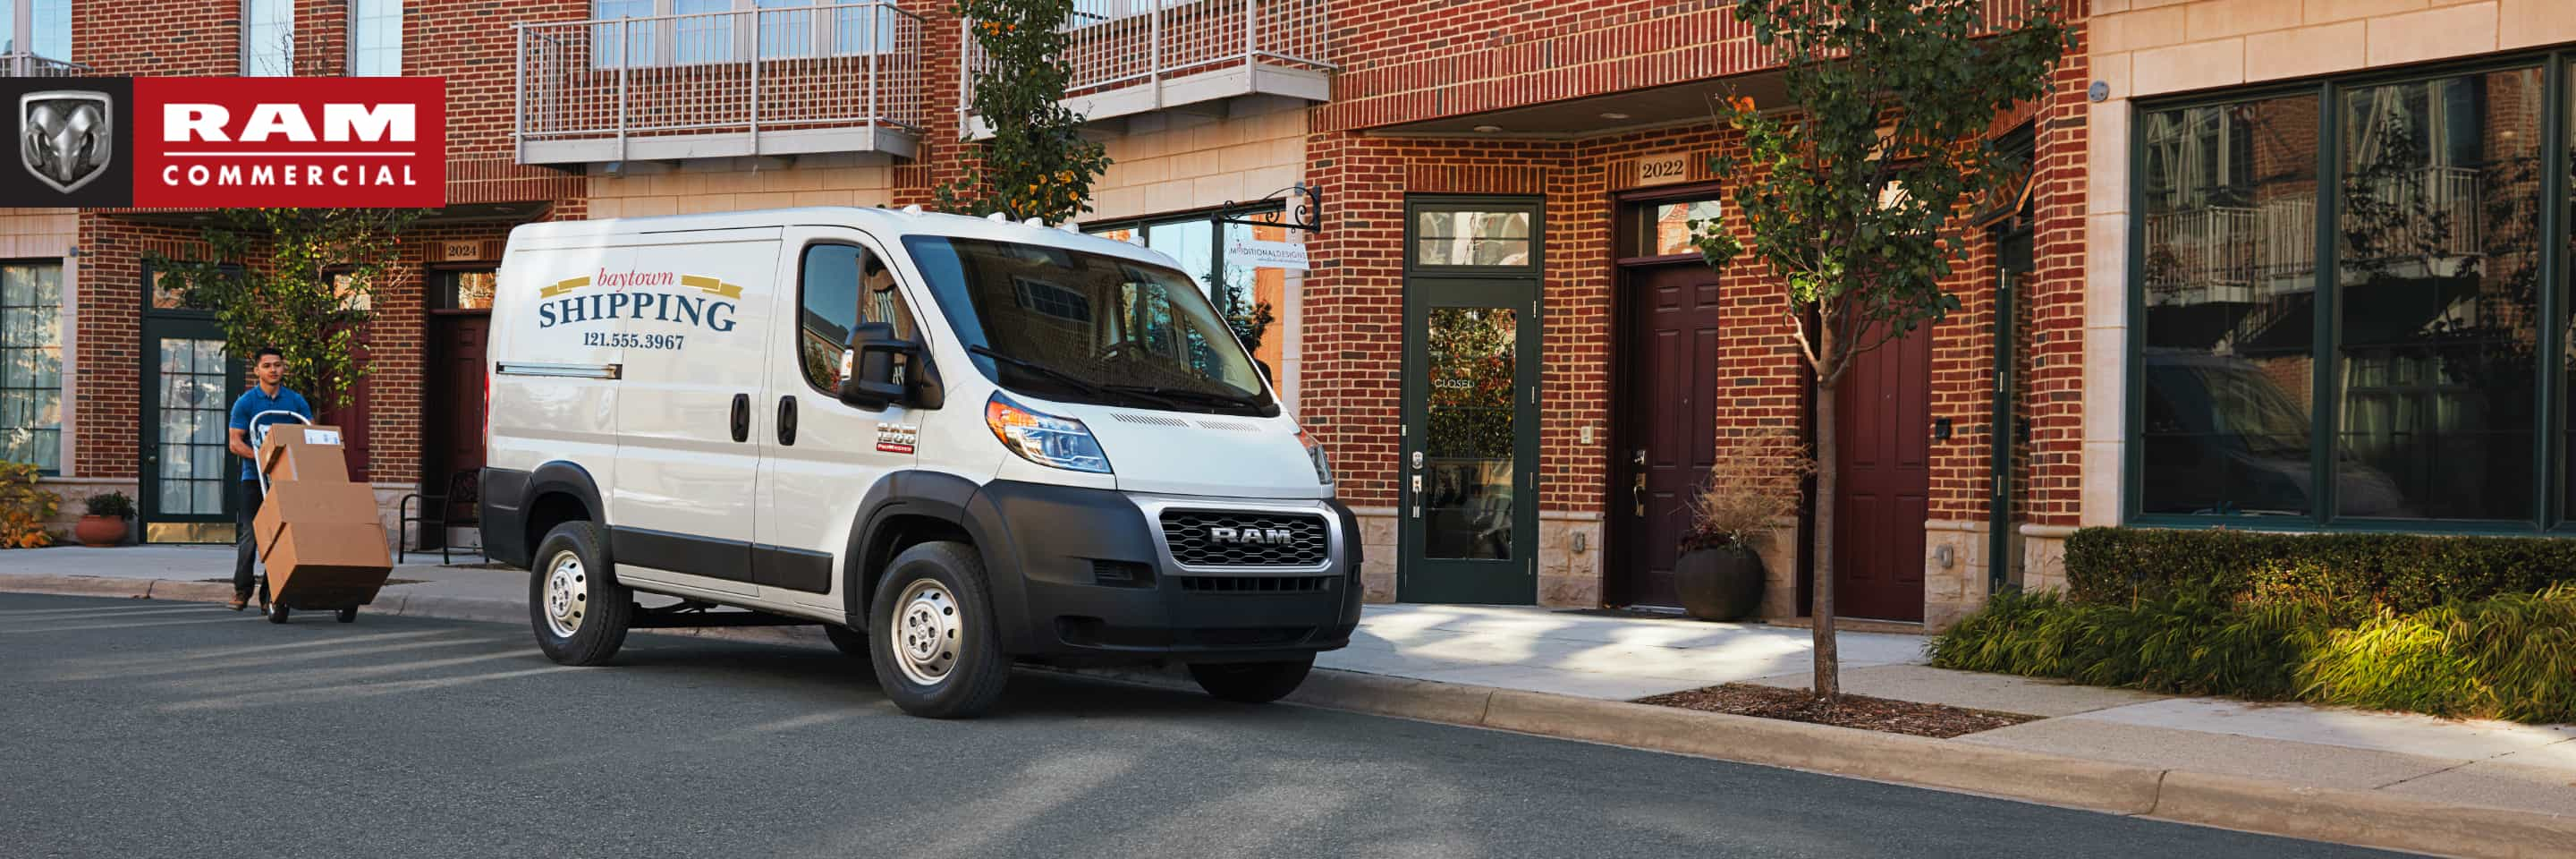 A 2019 Ram ProMaster with a shipping company logo parked outside a brick building. The Ram Commercial logo.